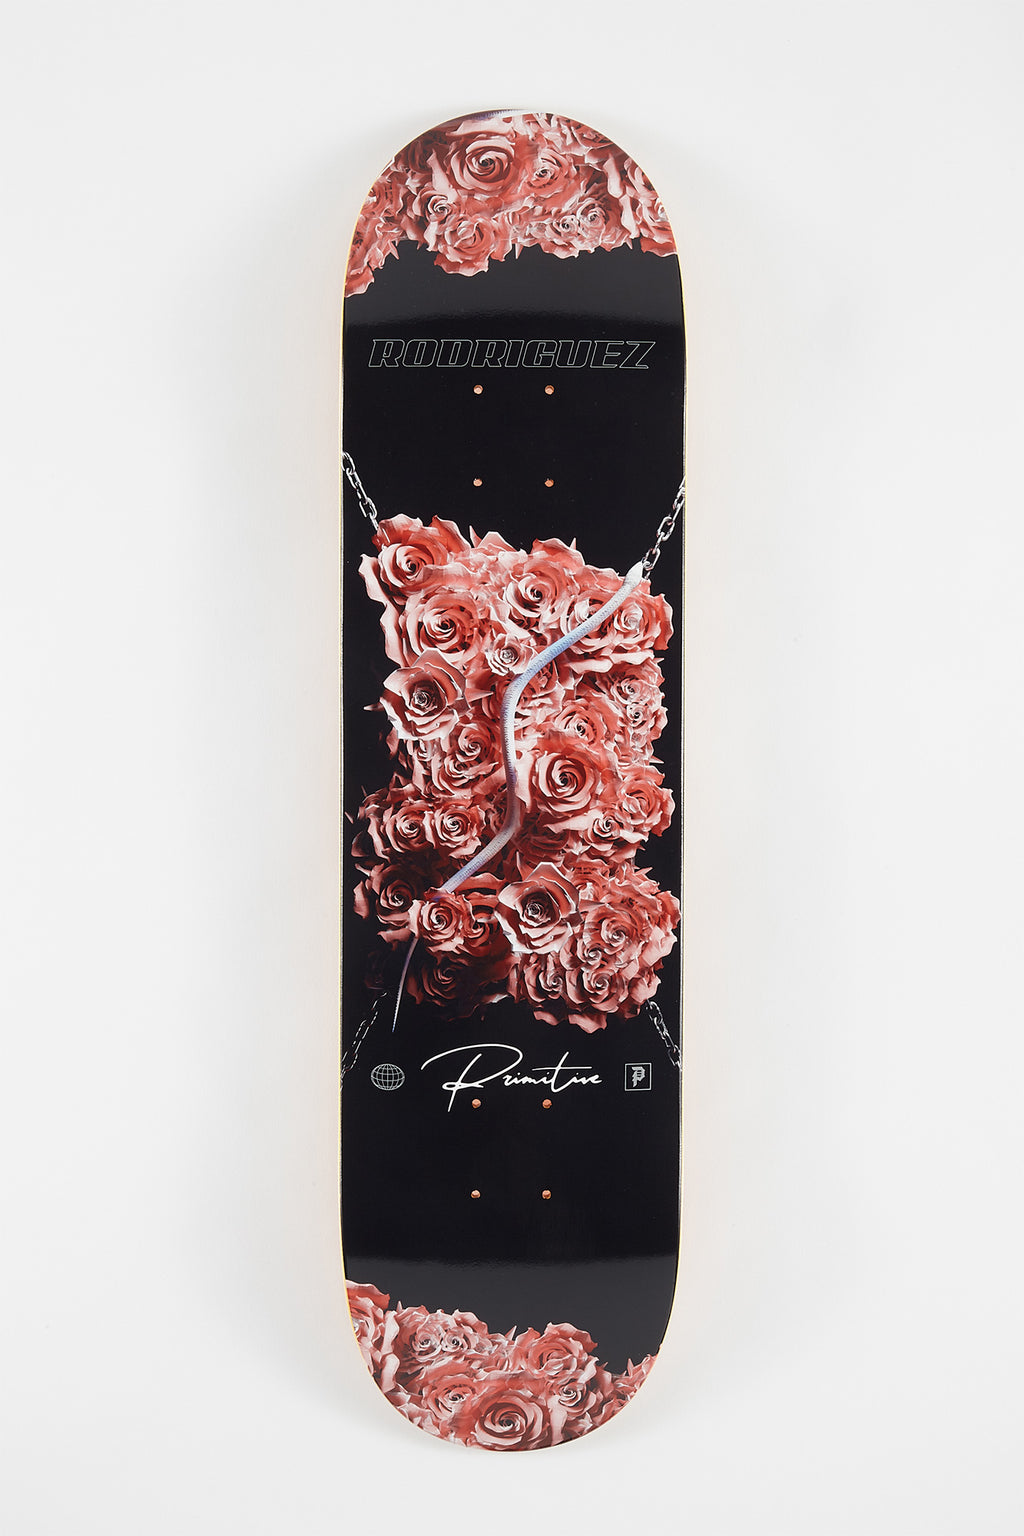 Primitive Rodriguez No Lies Skateboard Deck 8""